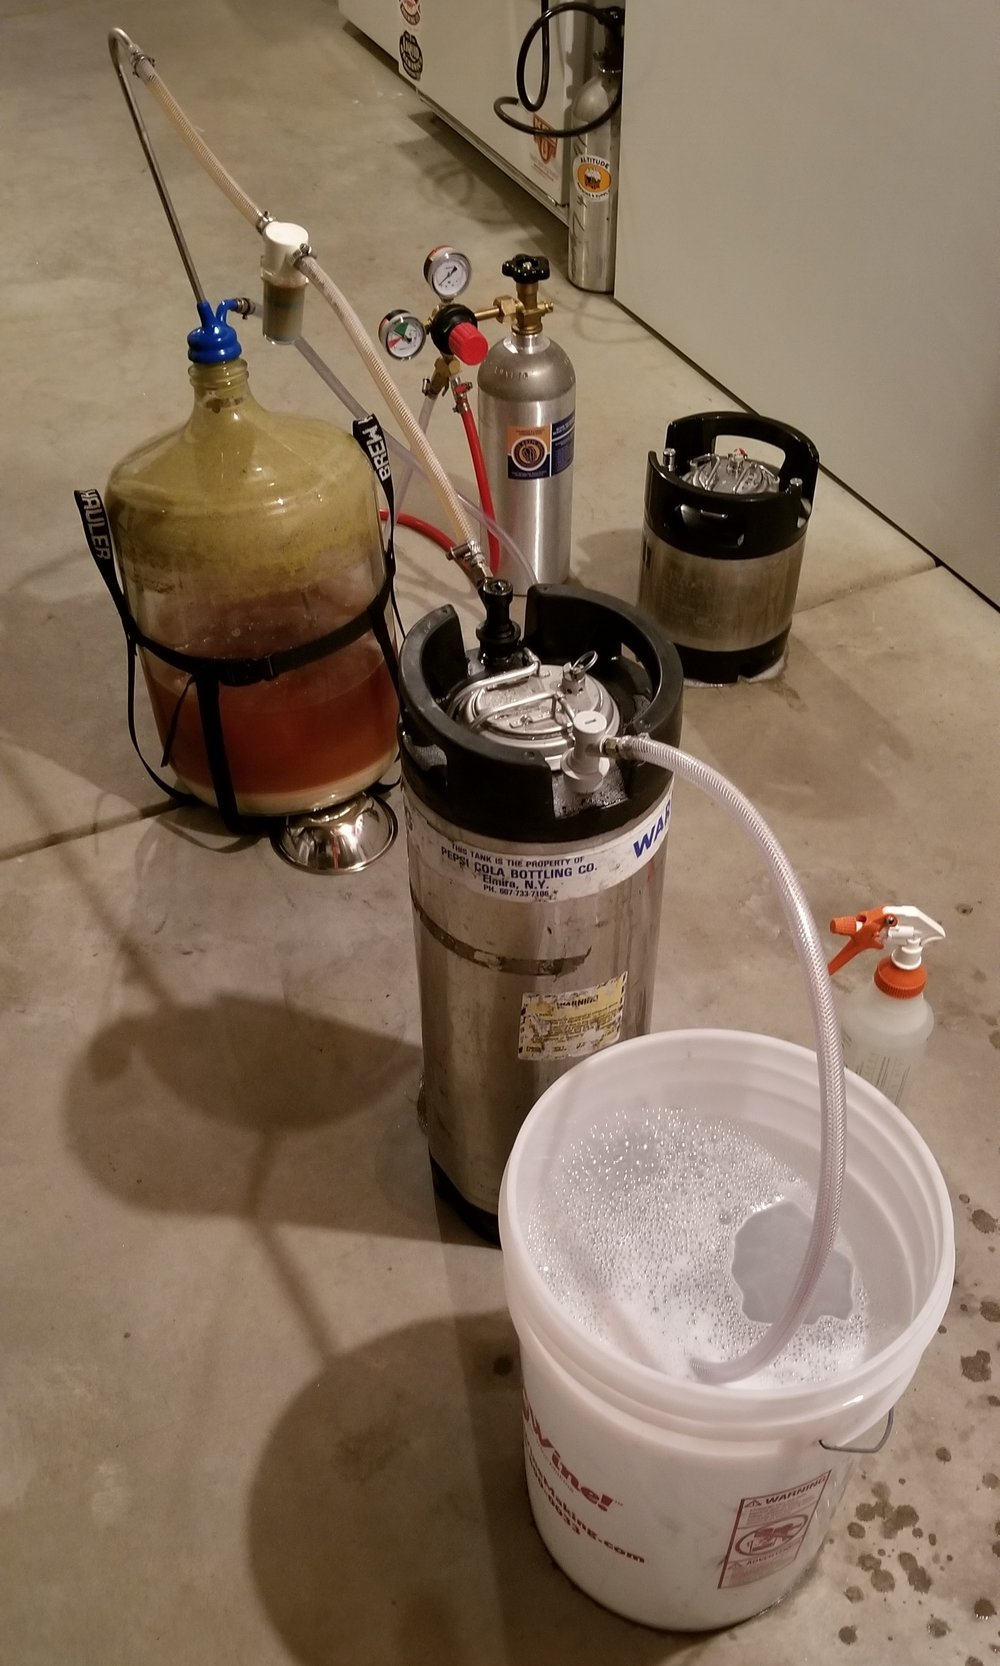 3/11/2018 - We transferred our Wheatwine to keg, sadly we onnly yielded about 4.5 gallons due to some intense blow off..... use fermcap next ... seriously its a lifesaver. An Oak Barrel will be in the mail soon. We will throw this brew in there.